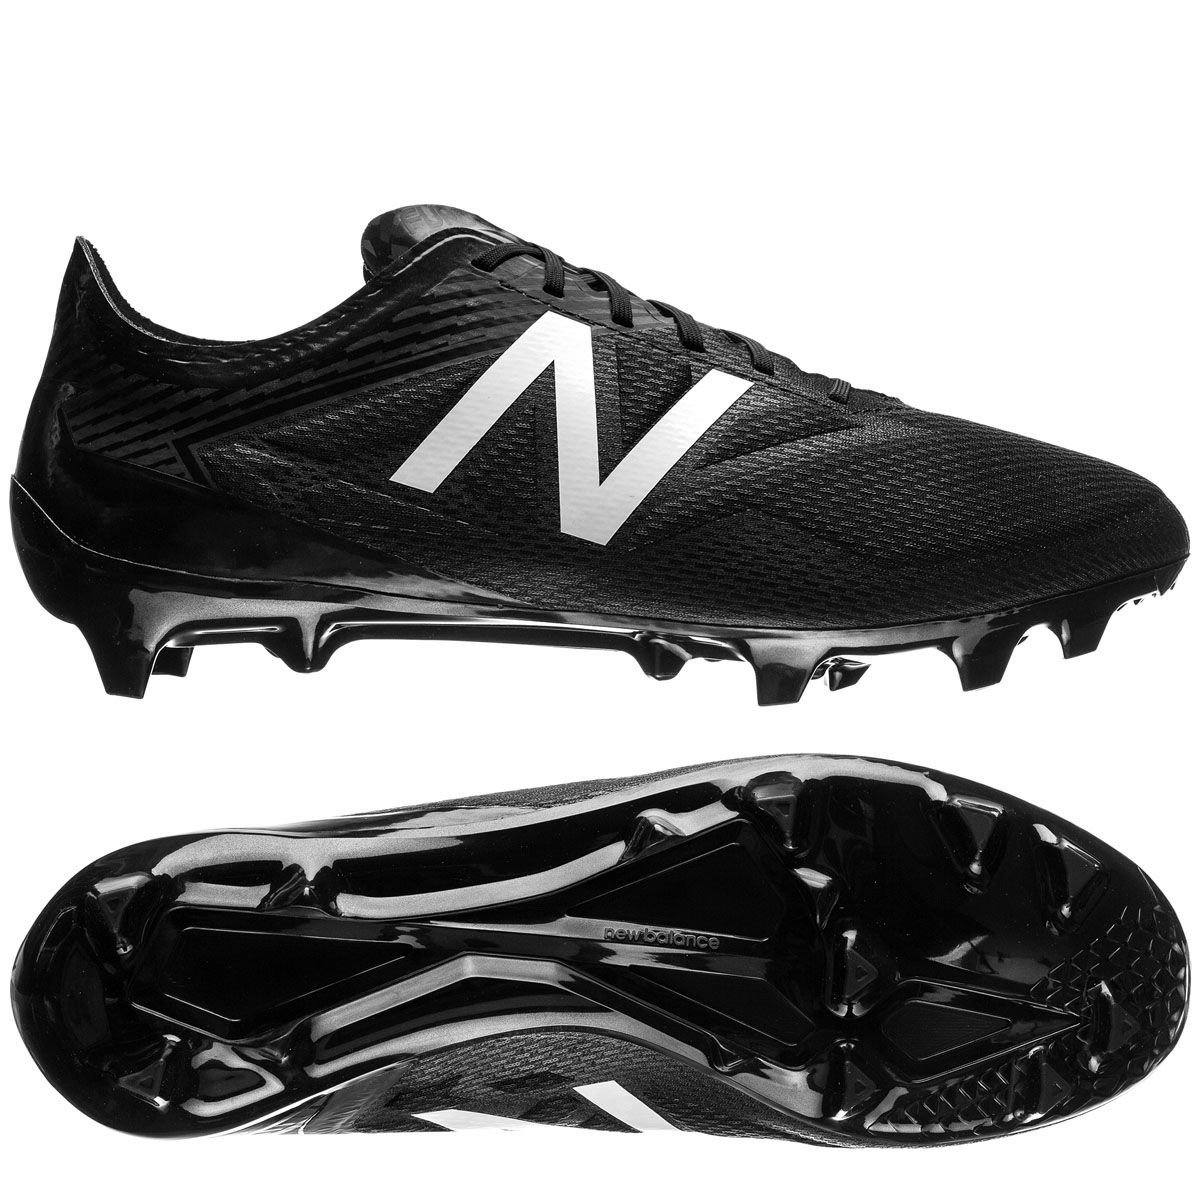 New Balance Men's Msfpfb33 B01N0GJYHK 12 2E US|Black